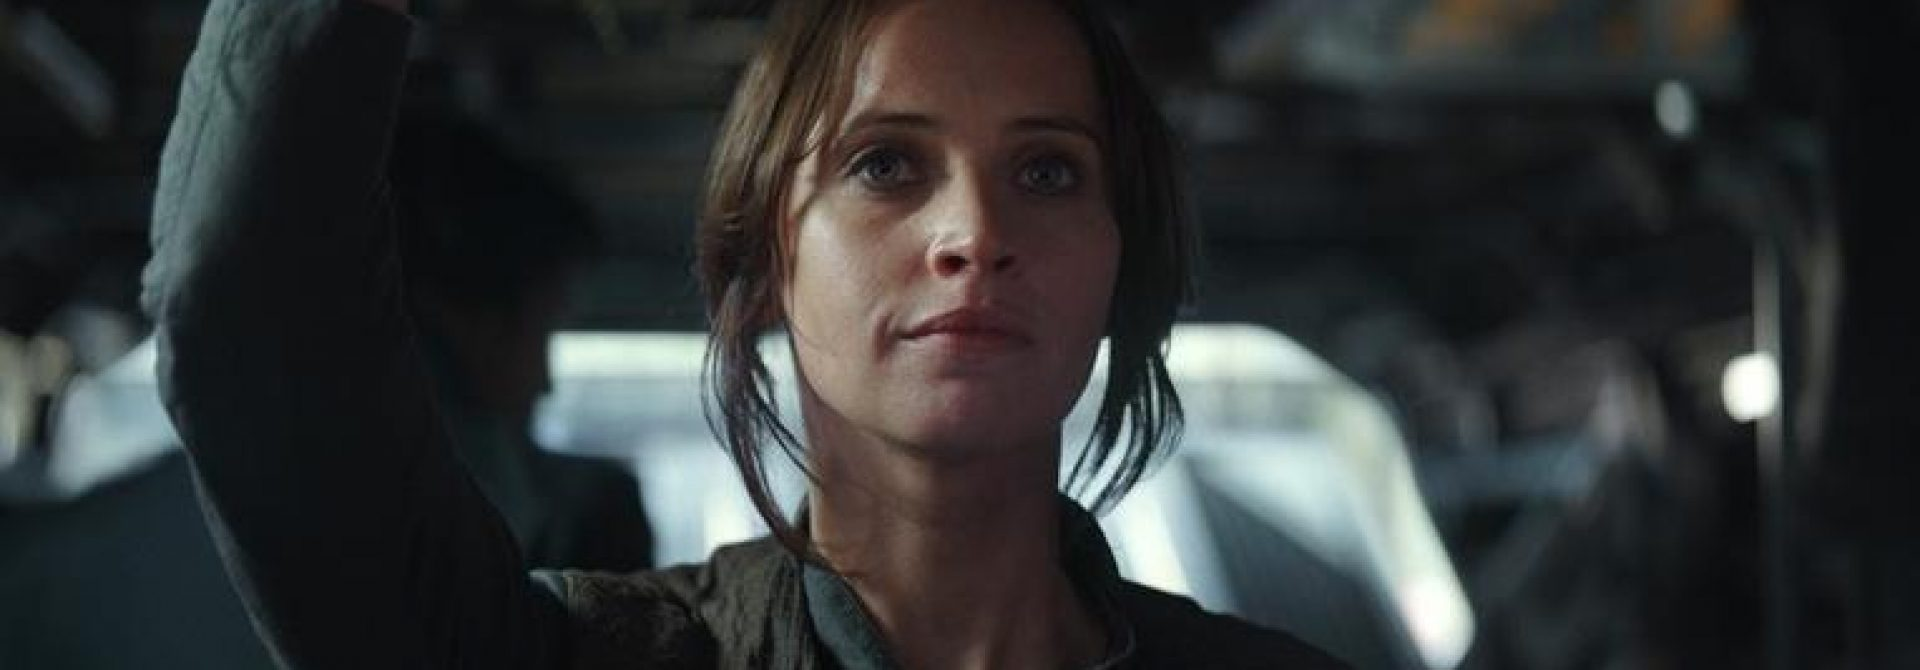 Rogue One's Beginning Changed More Than End